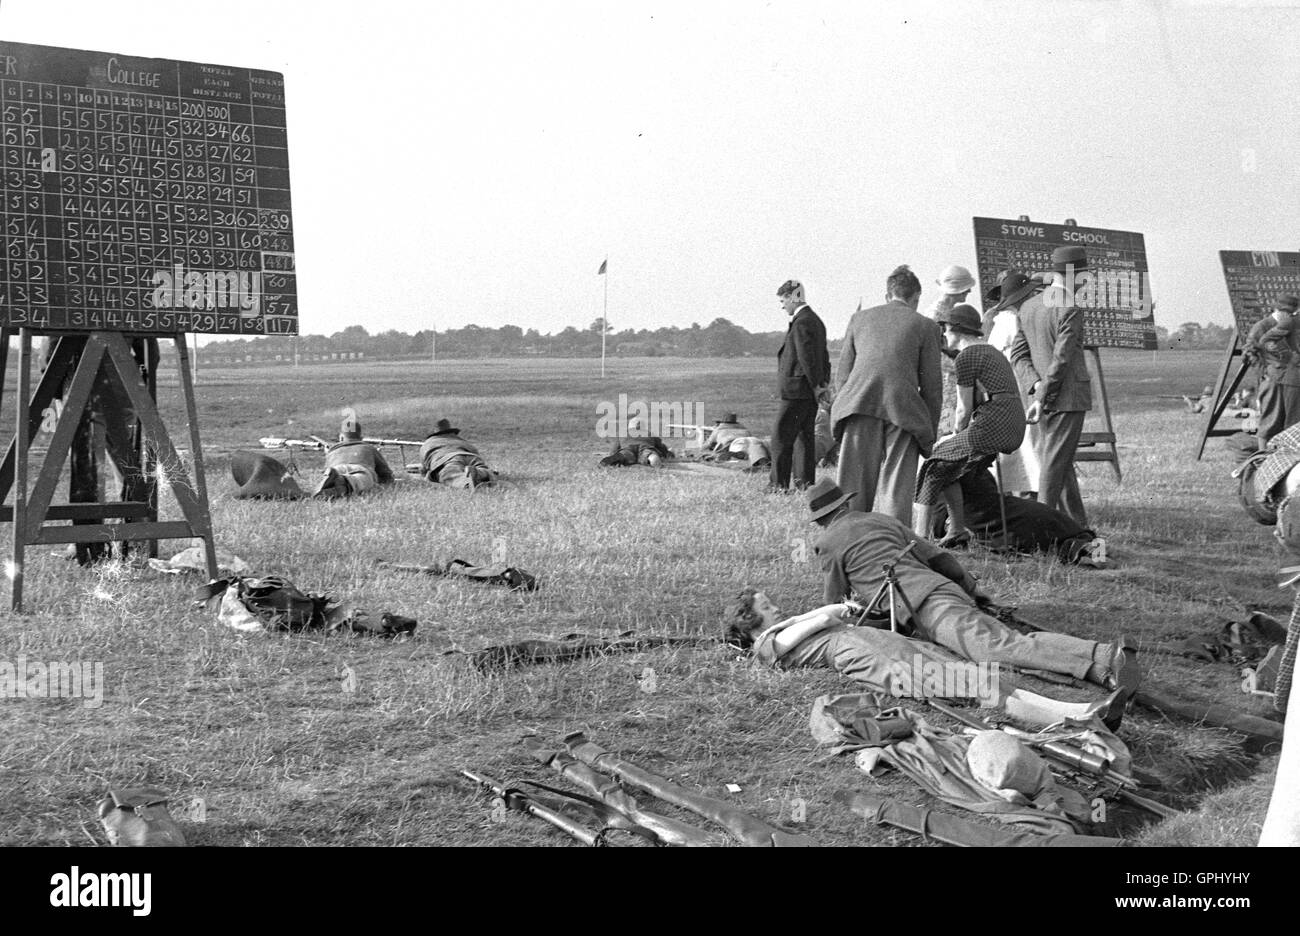 1930s, historical, English public schools rifle shooting competition at Bisley Camp, Woking, Surrey, England. - Stock Image